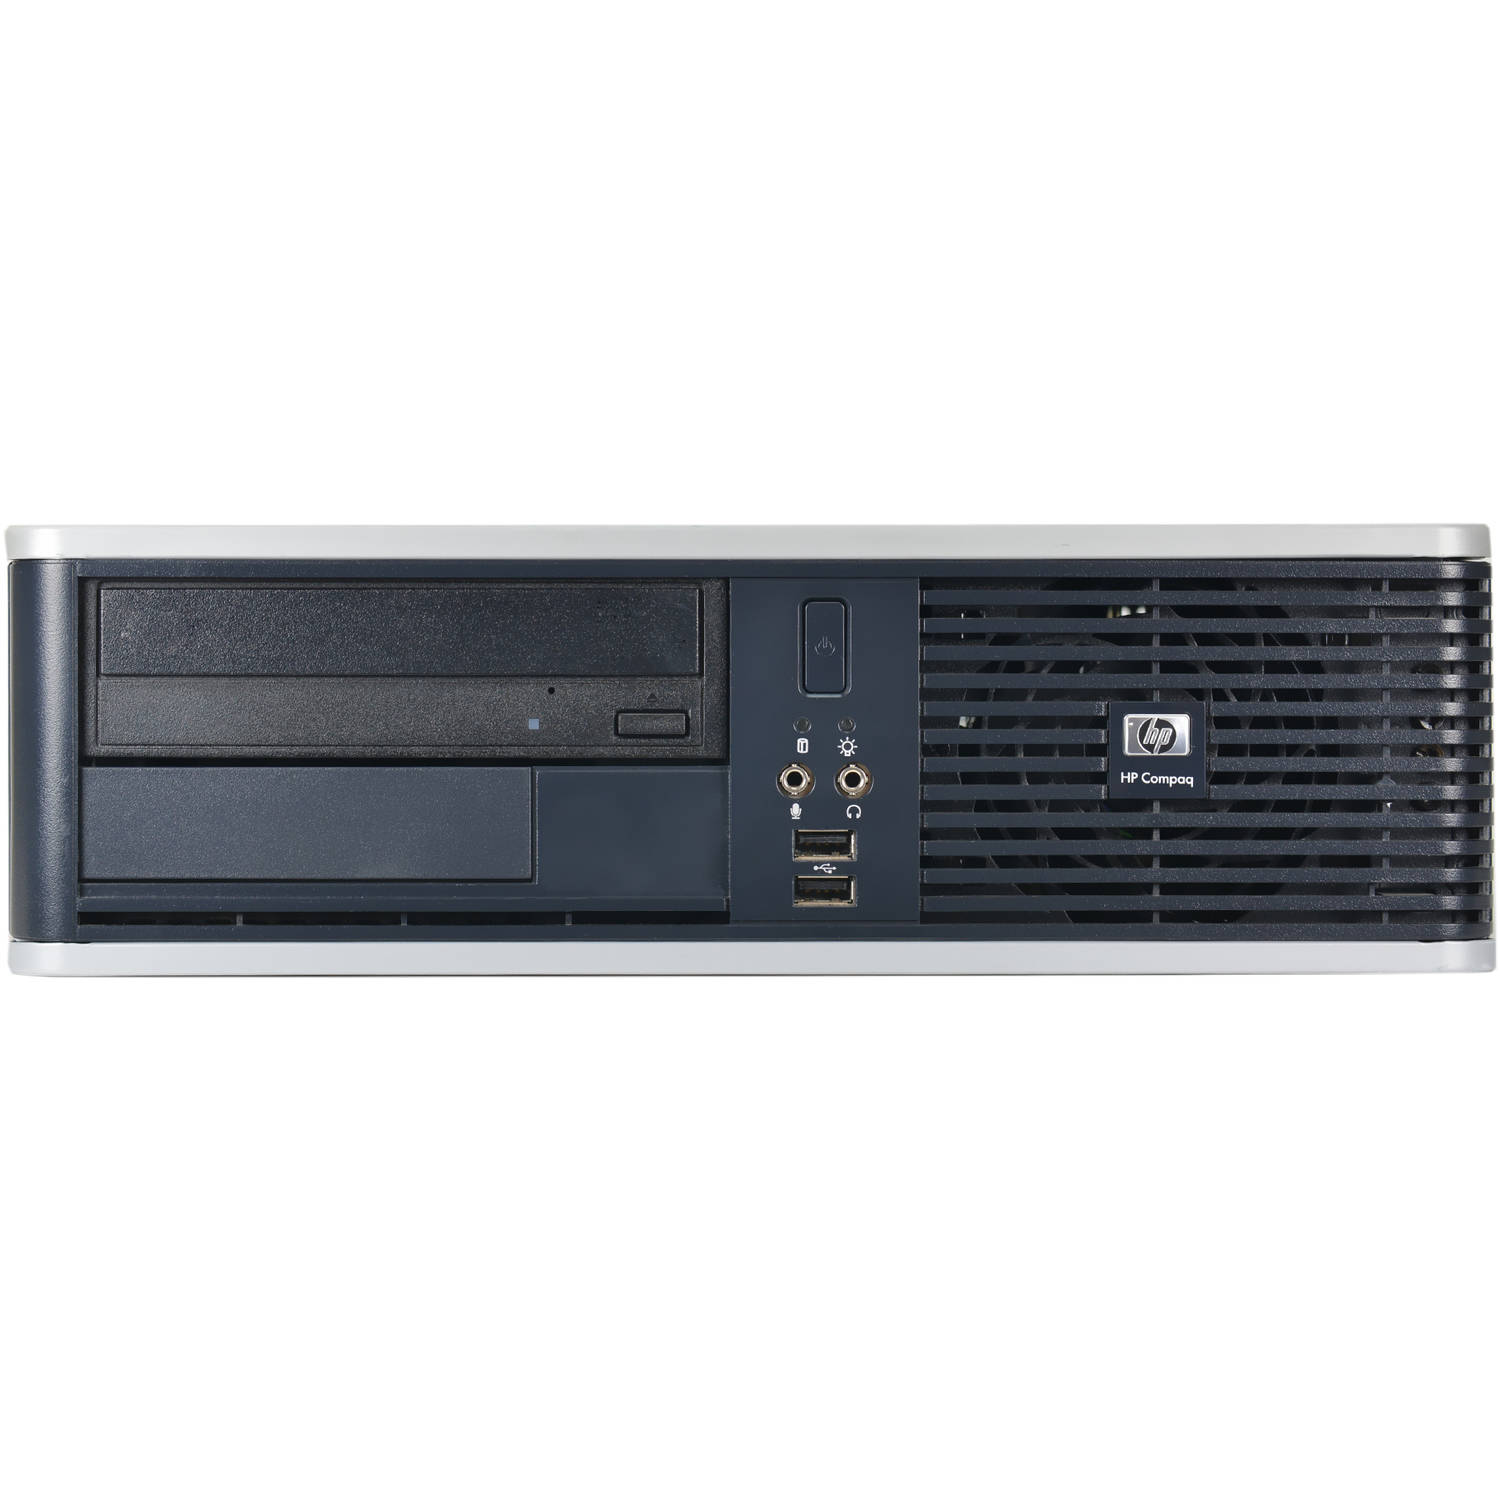 Refurbished HP Black DC5800 Desktop PC with Intel Core 2 Duo Processor, 4GB Memory, 1TB Hard Drive and Windows 10 Pro (Monitor Not Included)